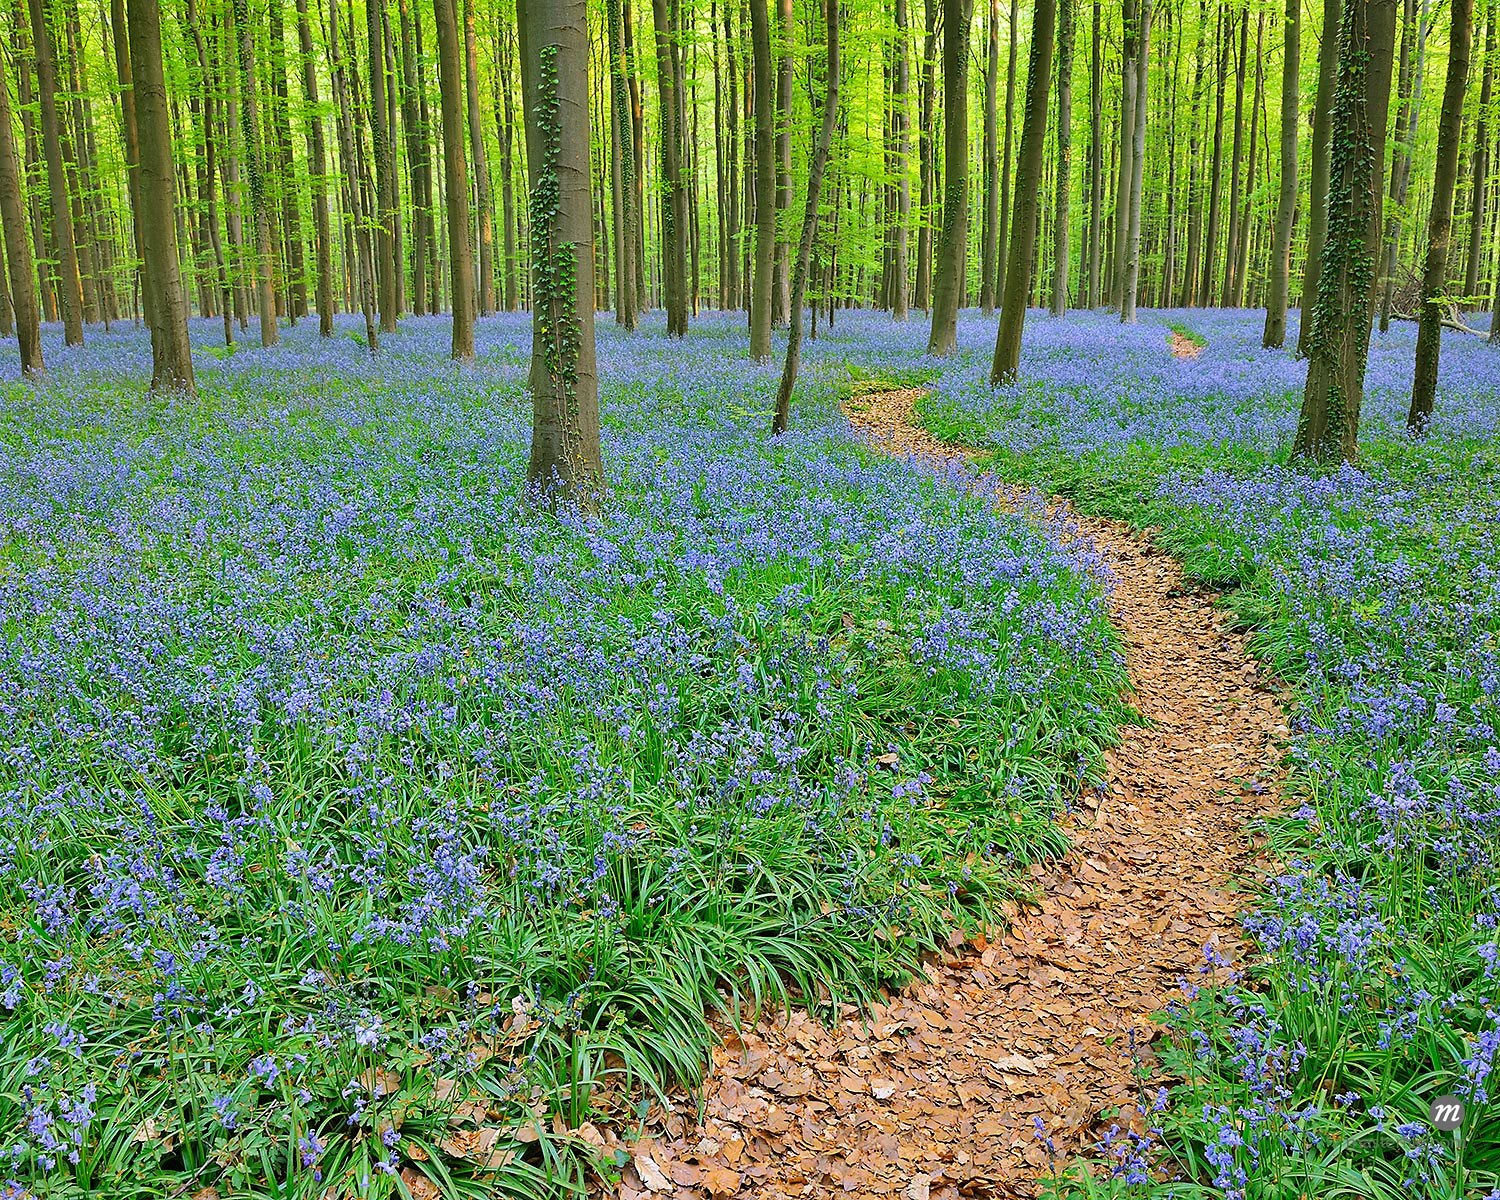 Path through Beech Forest with Bluebells in Spring, Hallerbos, Halle, Flemish Brabant, Vlaams Gewest, Belgium  © Raimund Linke / Masterfile